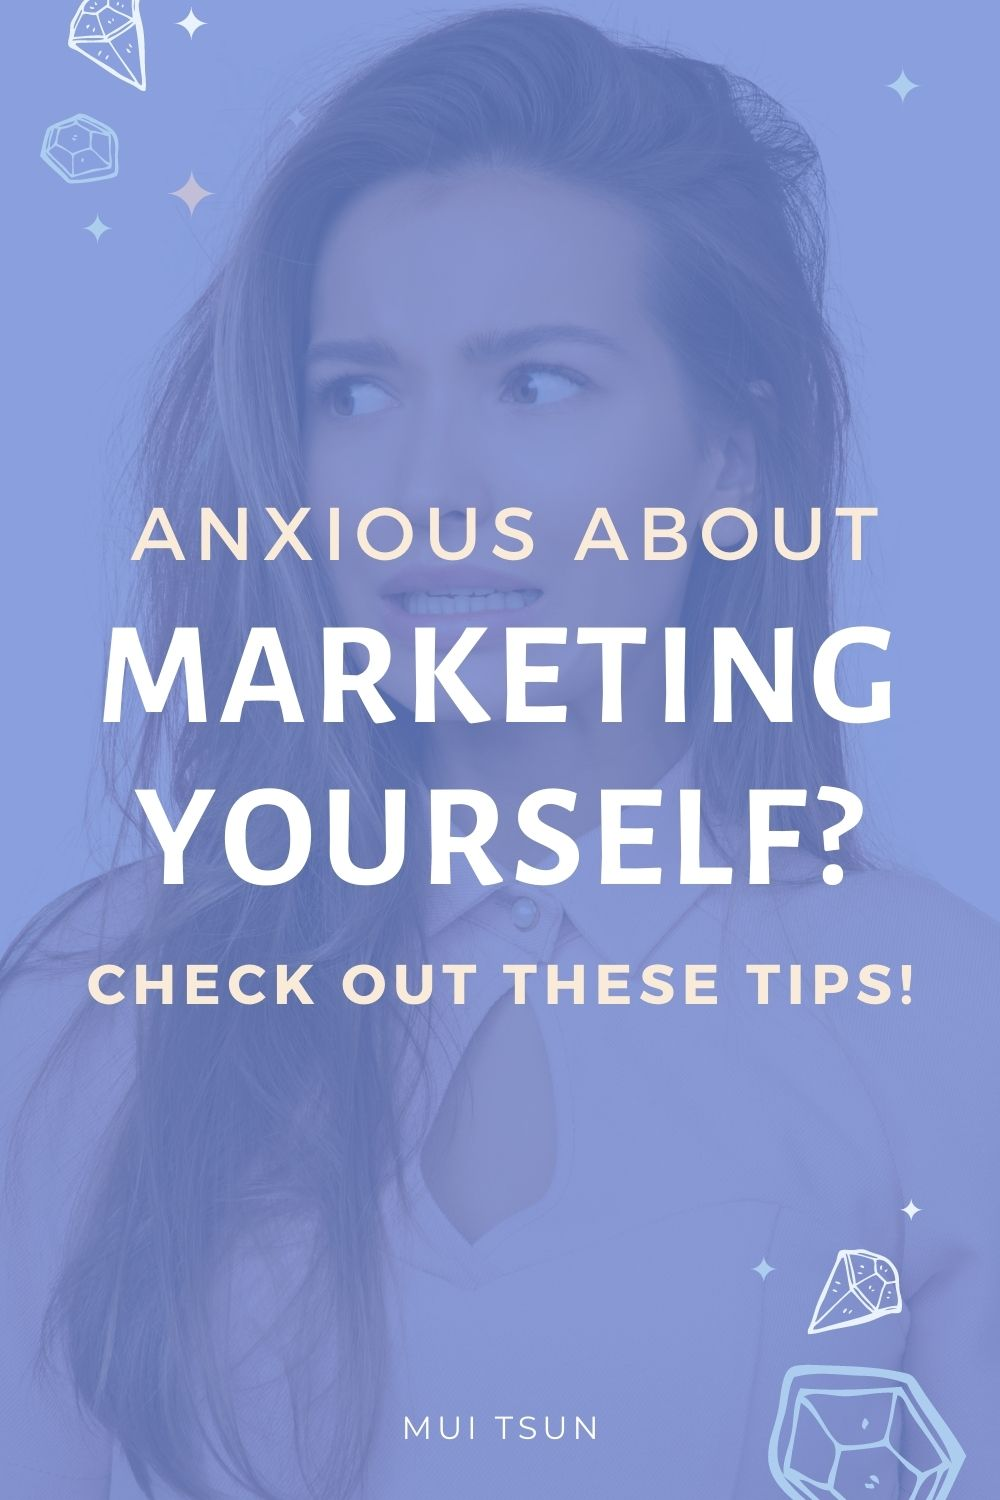 How to Overcome the Fear of Marketing Yourself